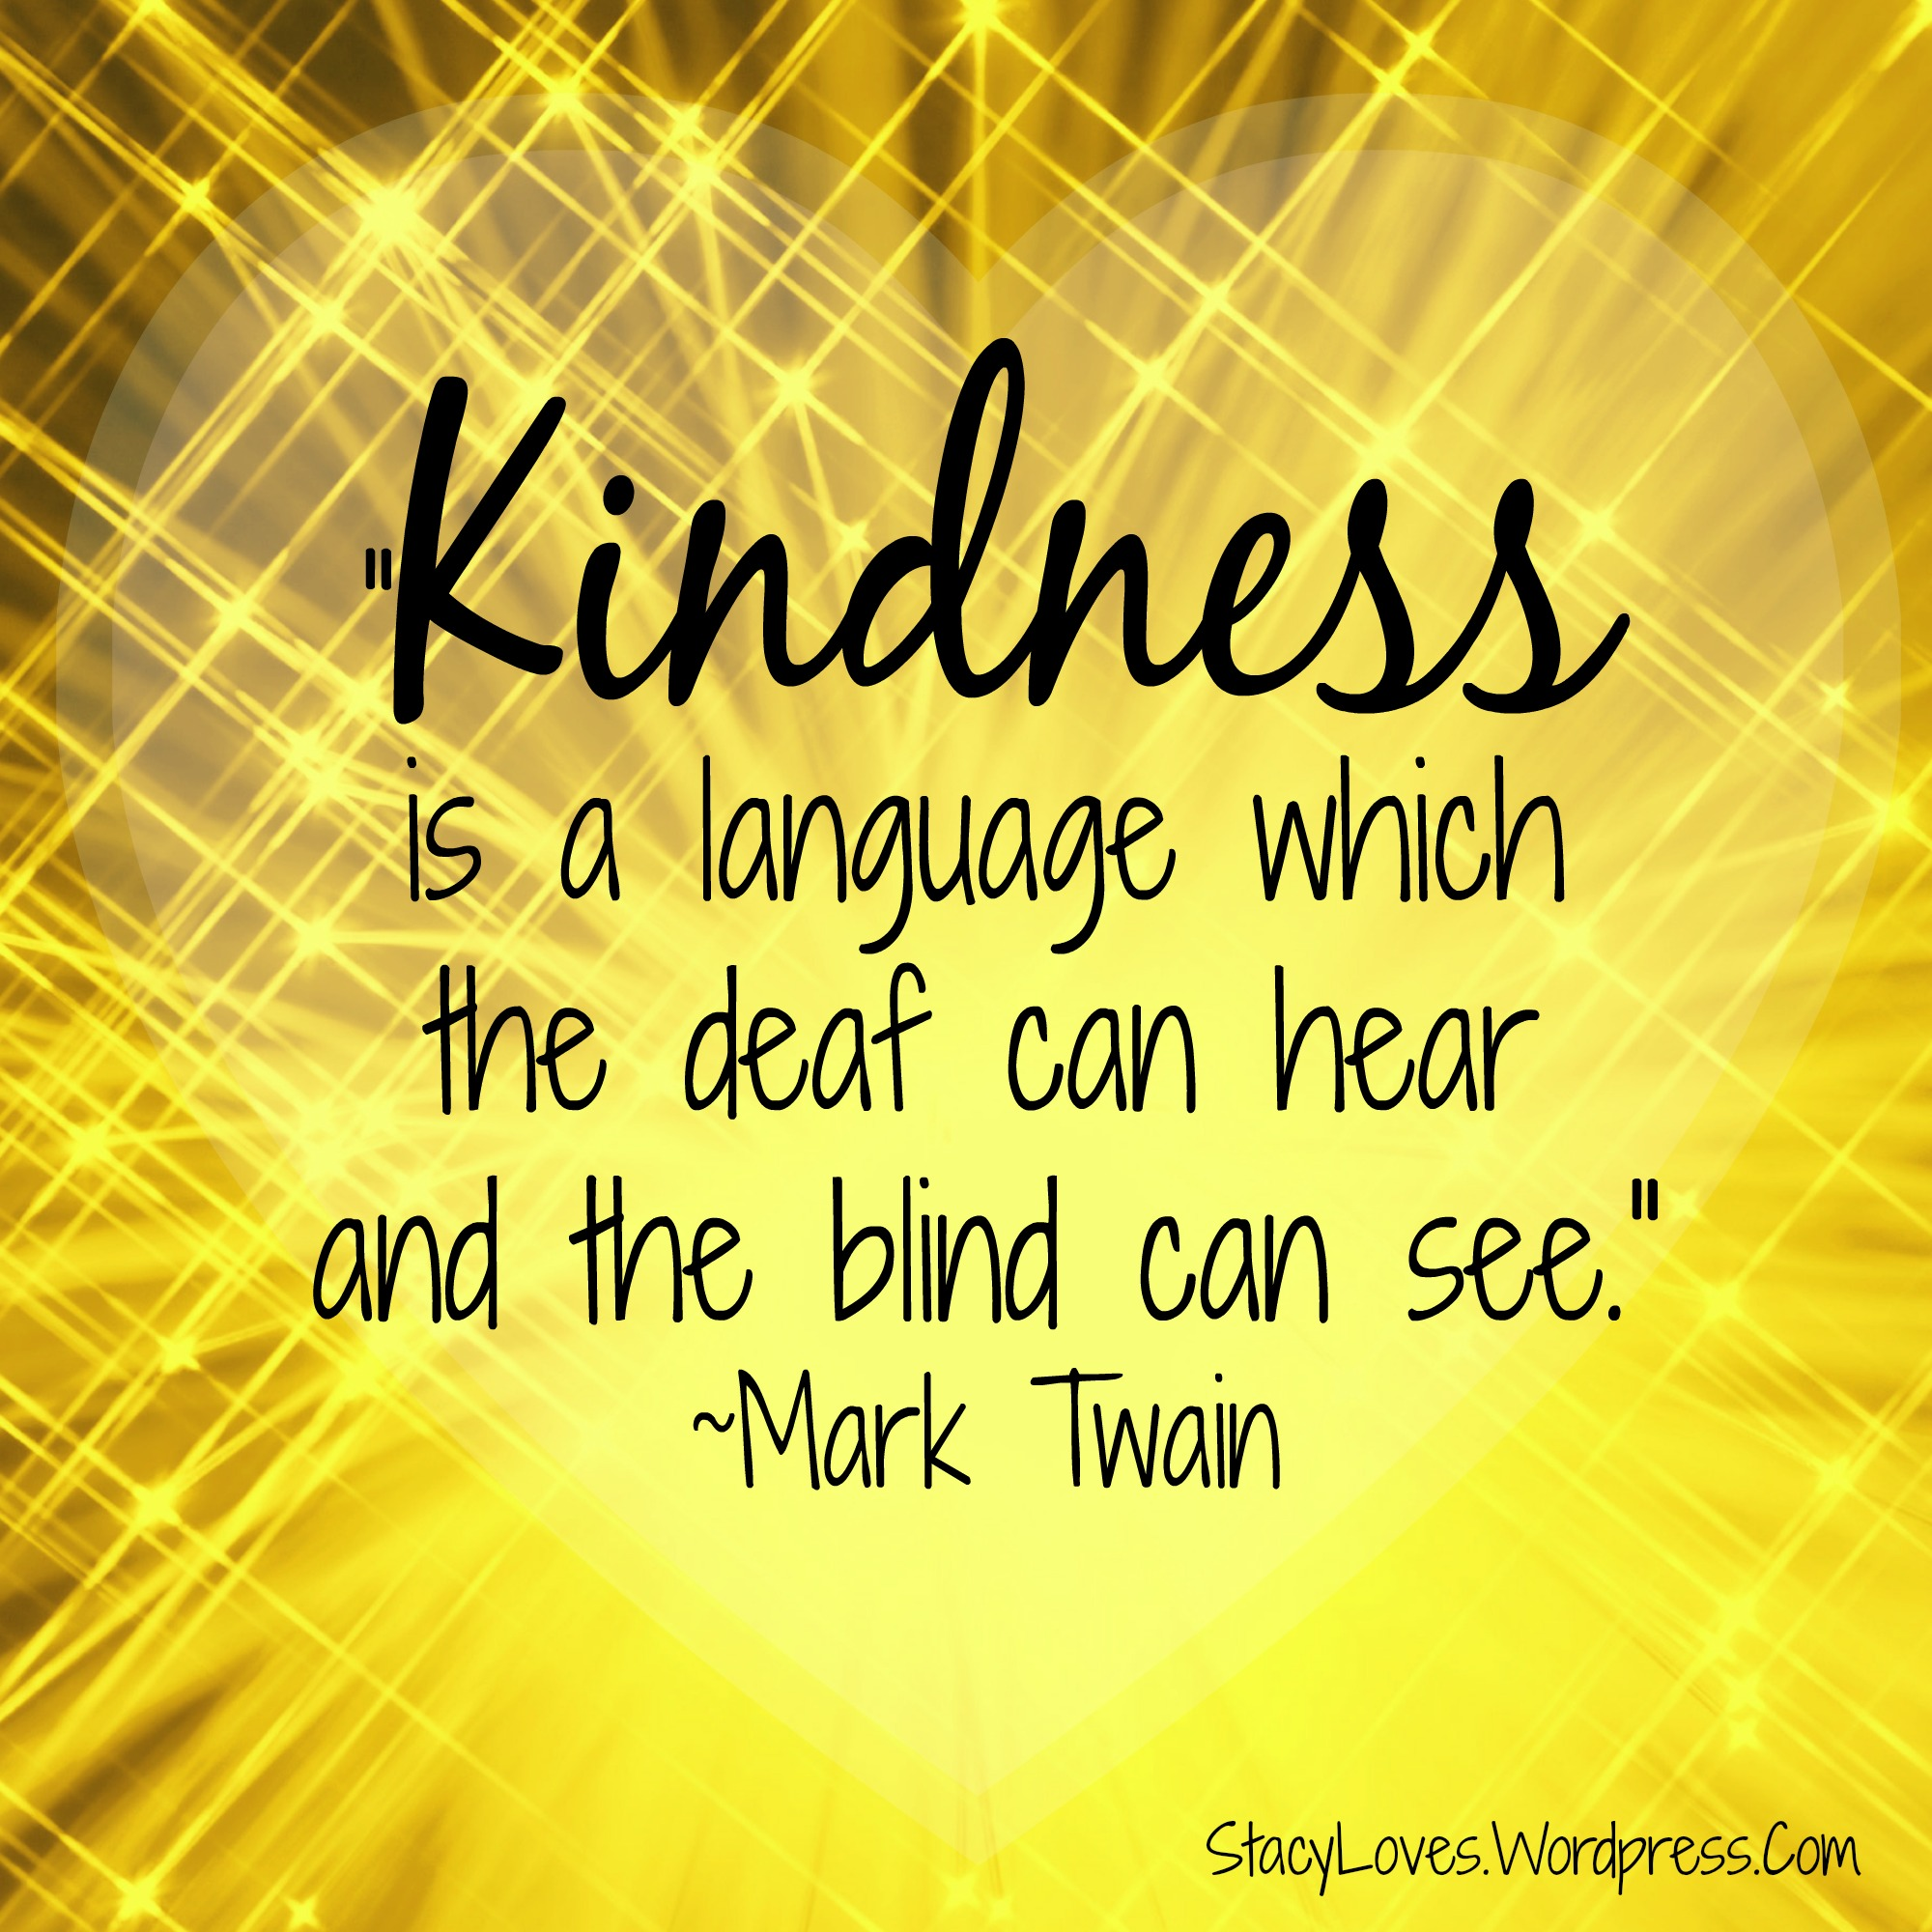 Quotes Kindness Mark Twain Kindness Quotes  Journey To Complete Wellness